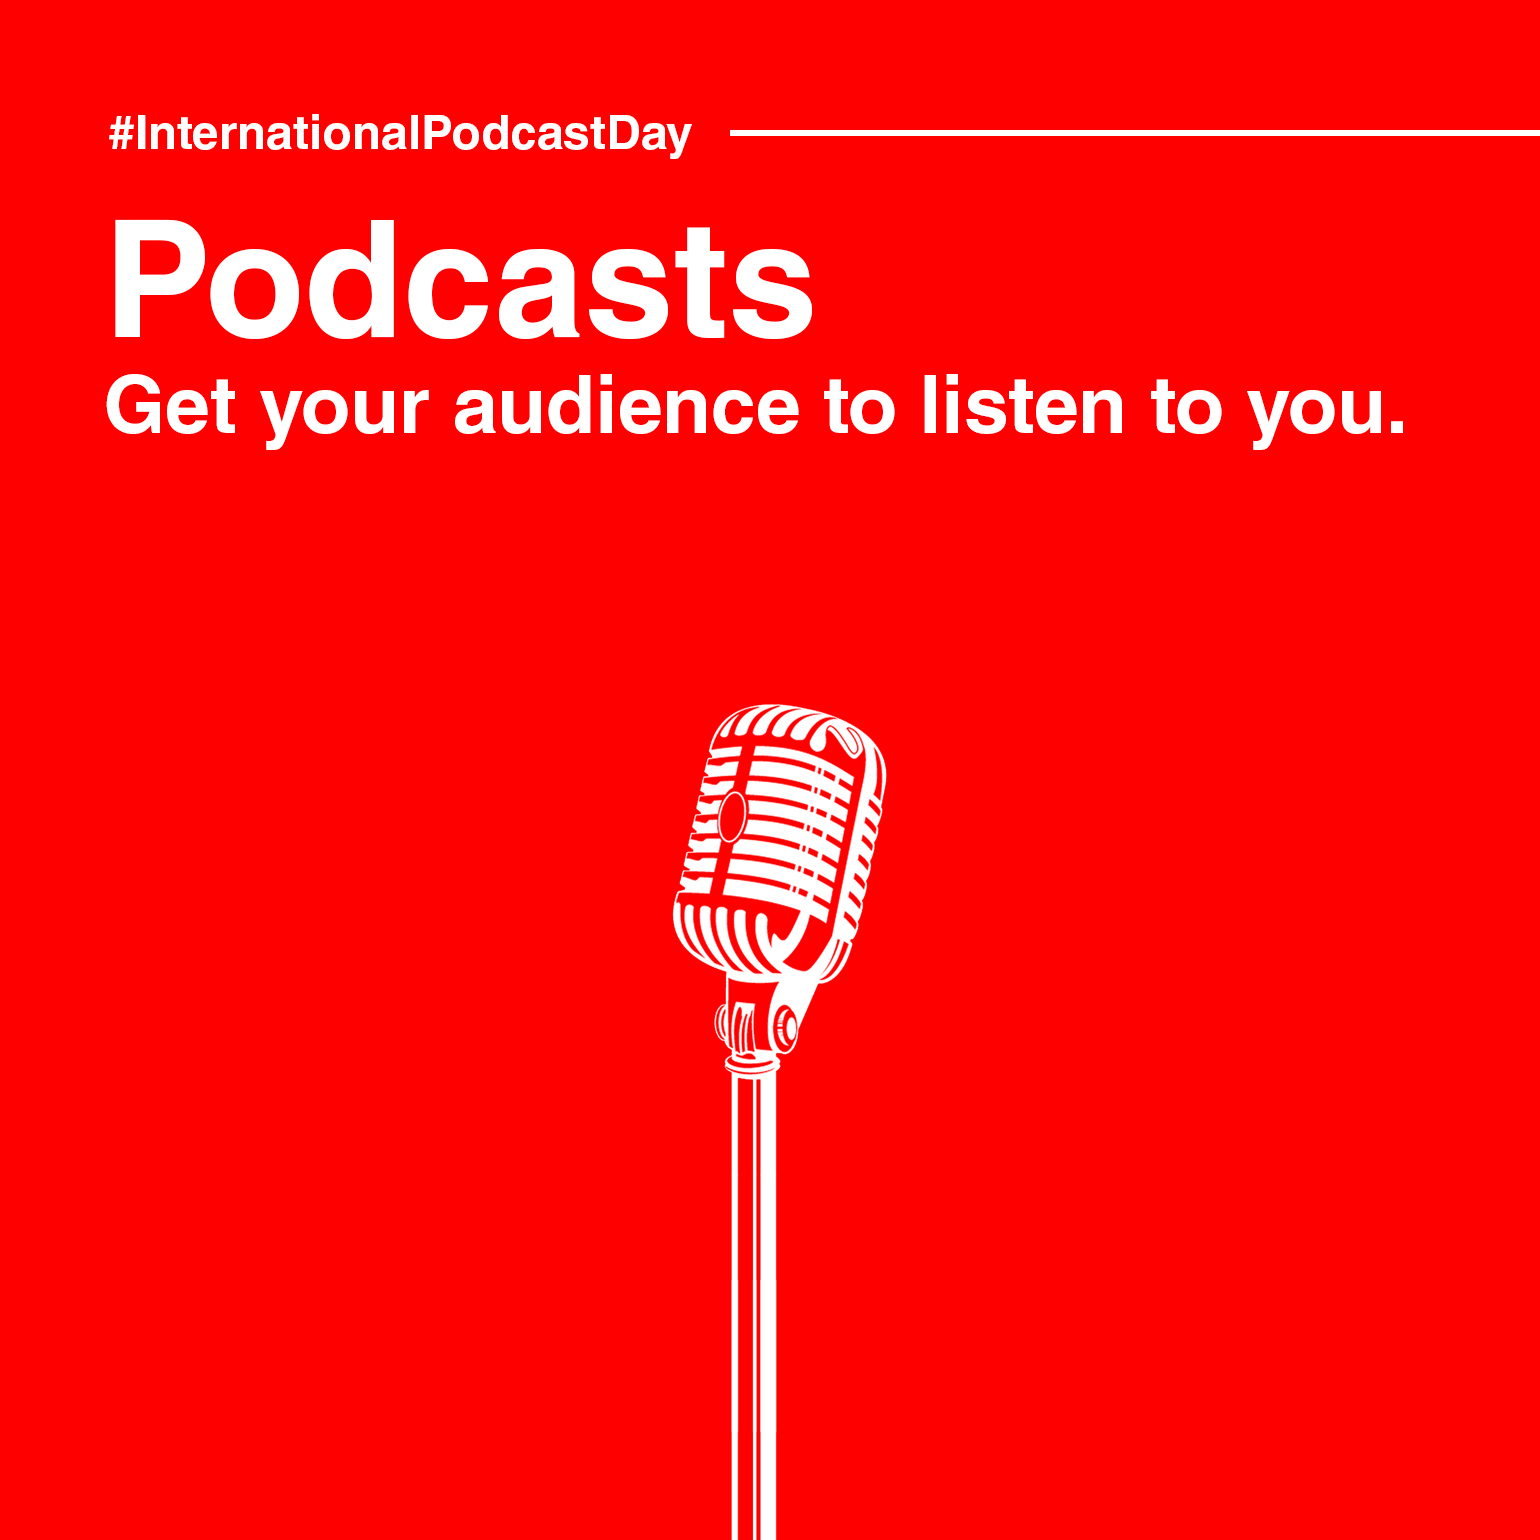 Podcasts – Get your audience to listen to you